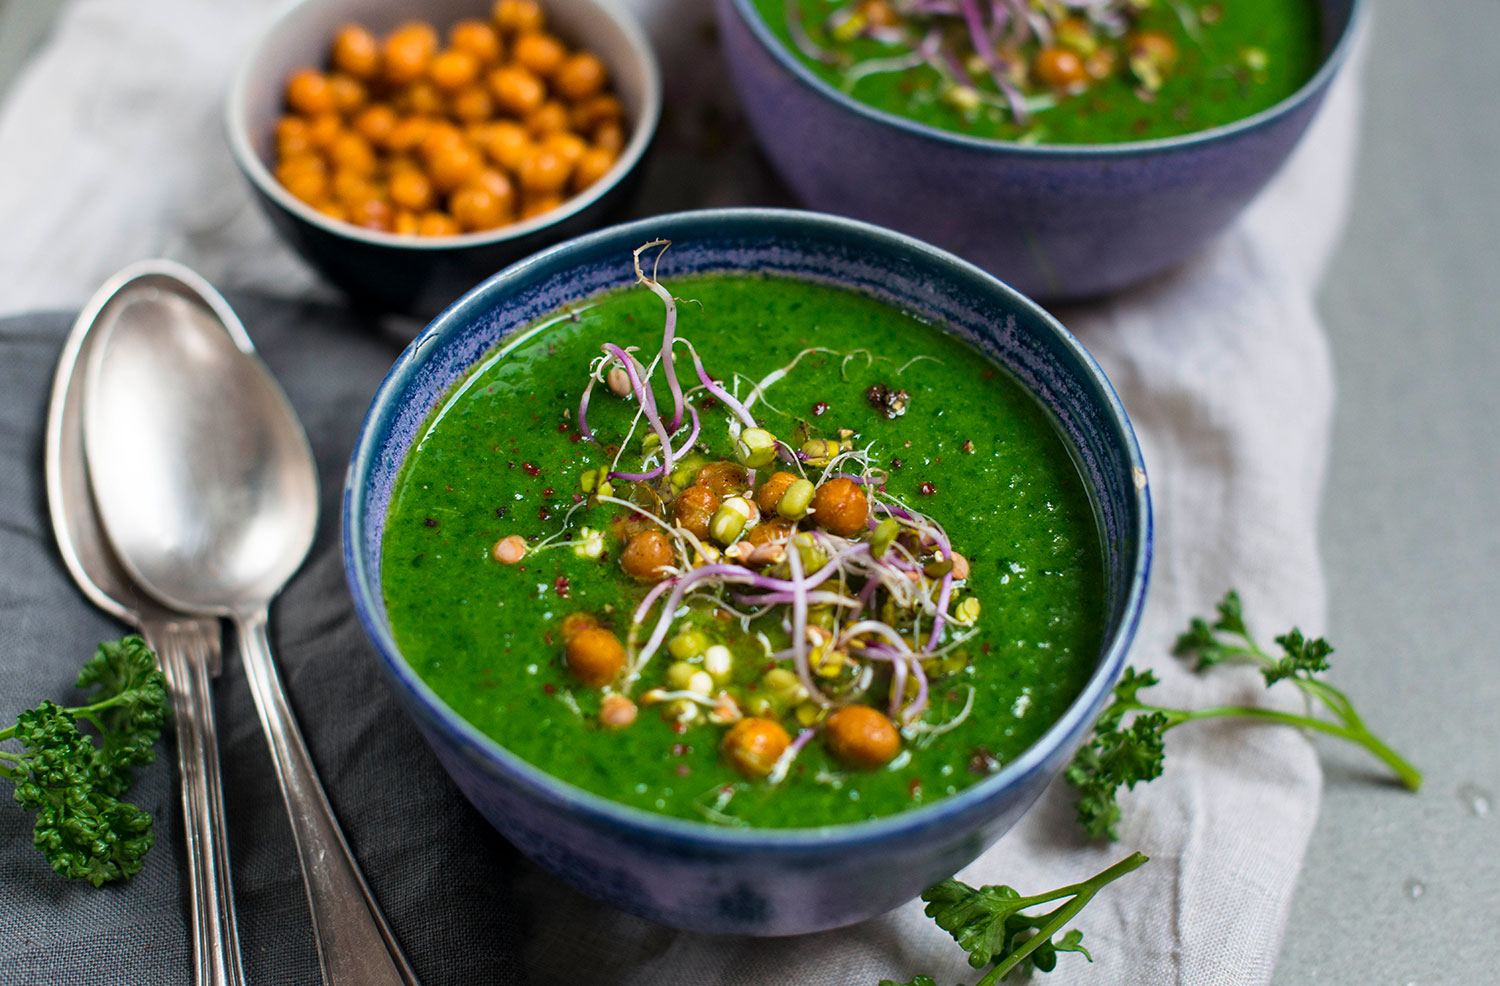 Vegan-spinach-parsley-soup-Florette-Lea-Lou-1